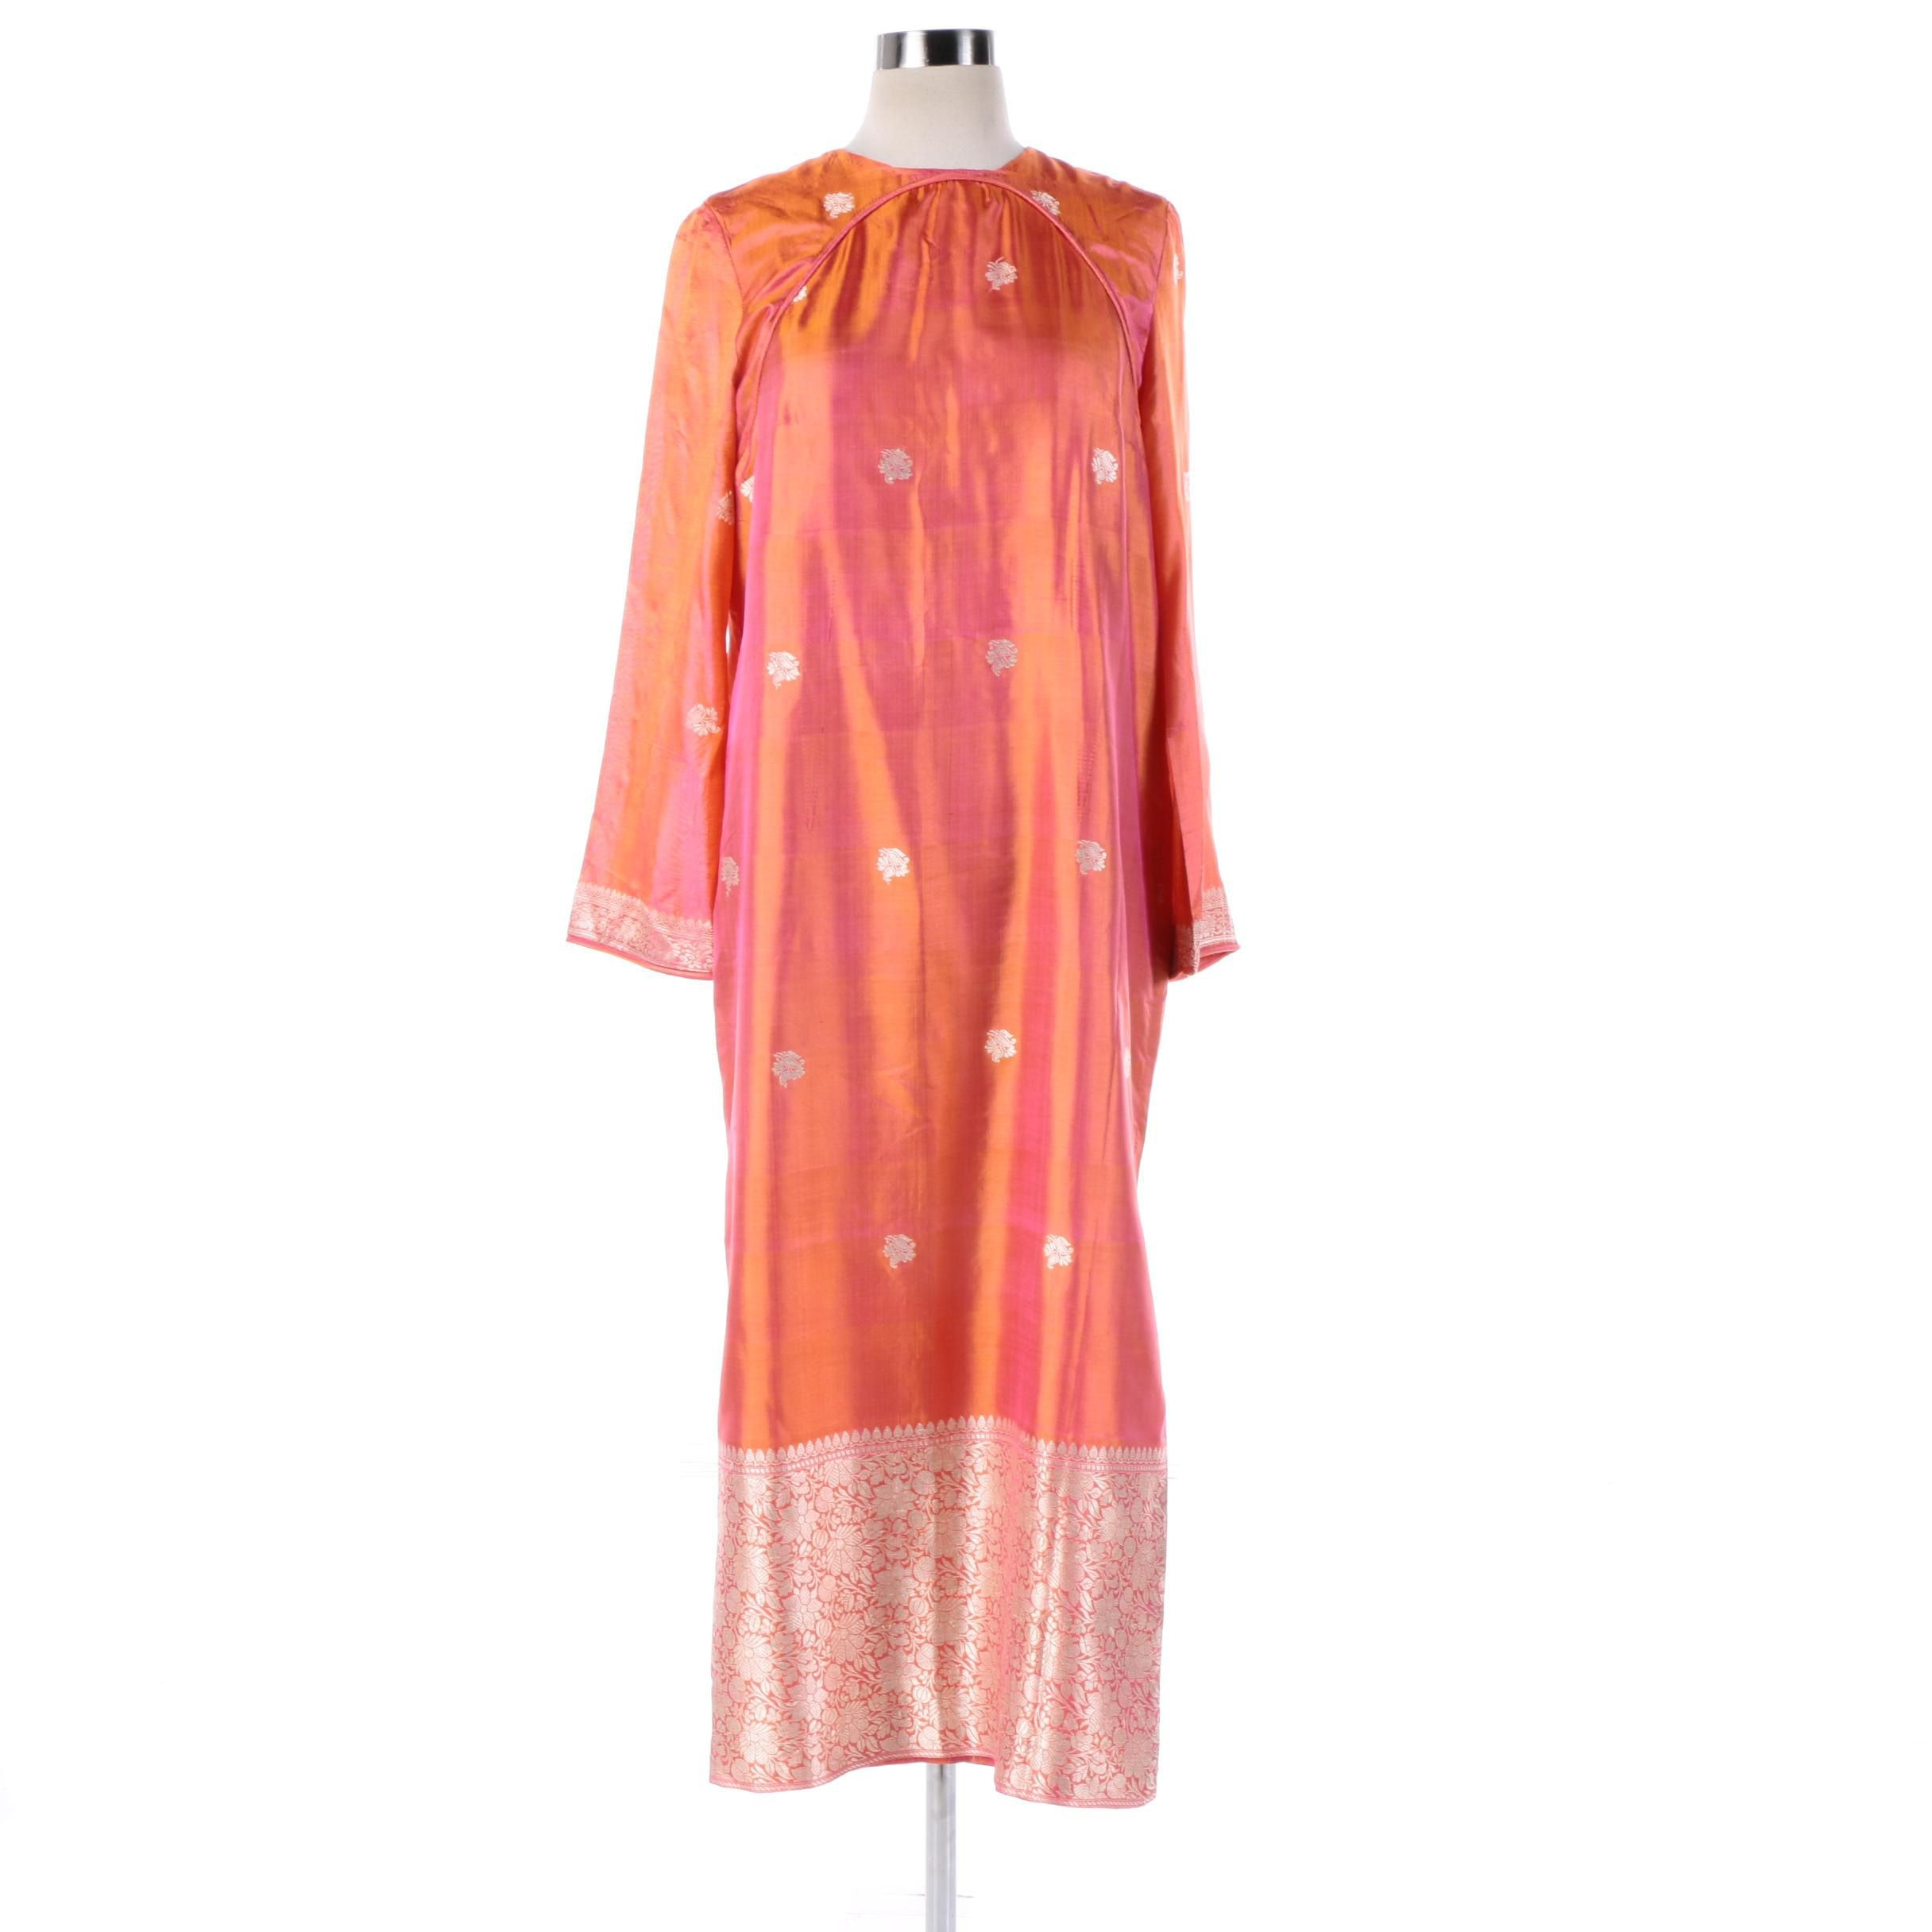 Vintage Iridescent Pink and Orange Indian Tunic Dress with Gold Embroidery